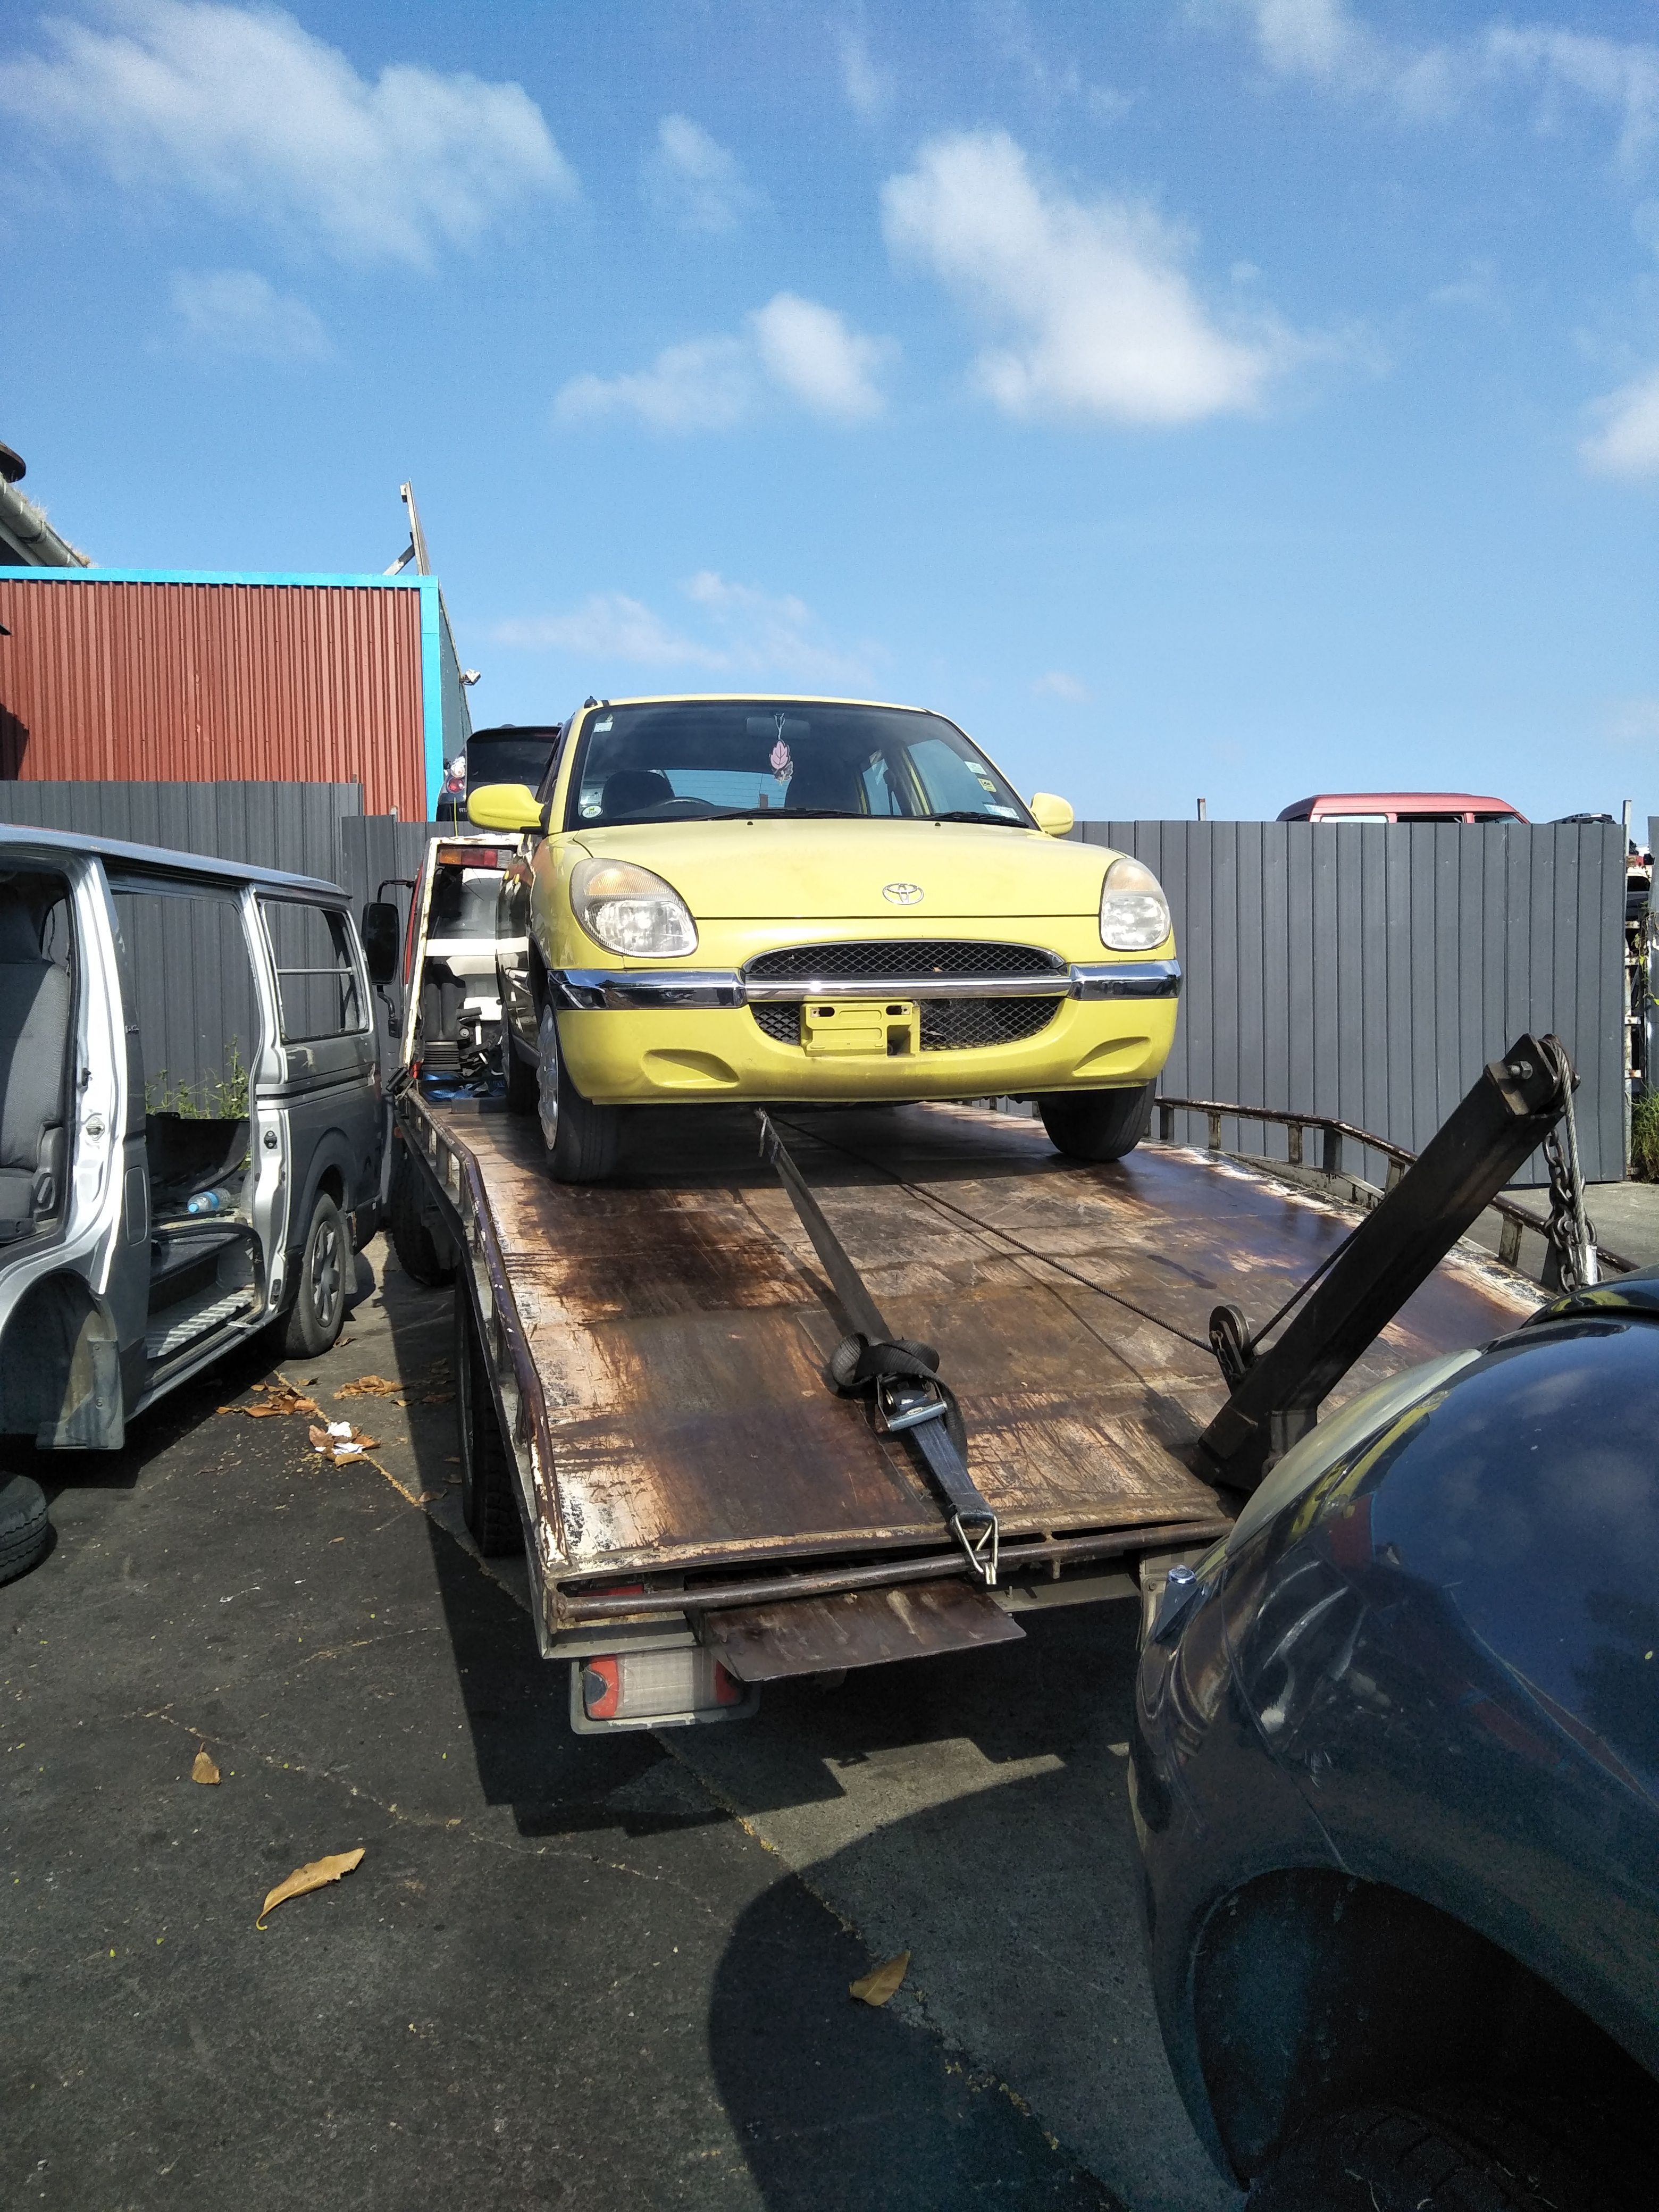 Got an old rusty car truck ute 4x4 sitting on your